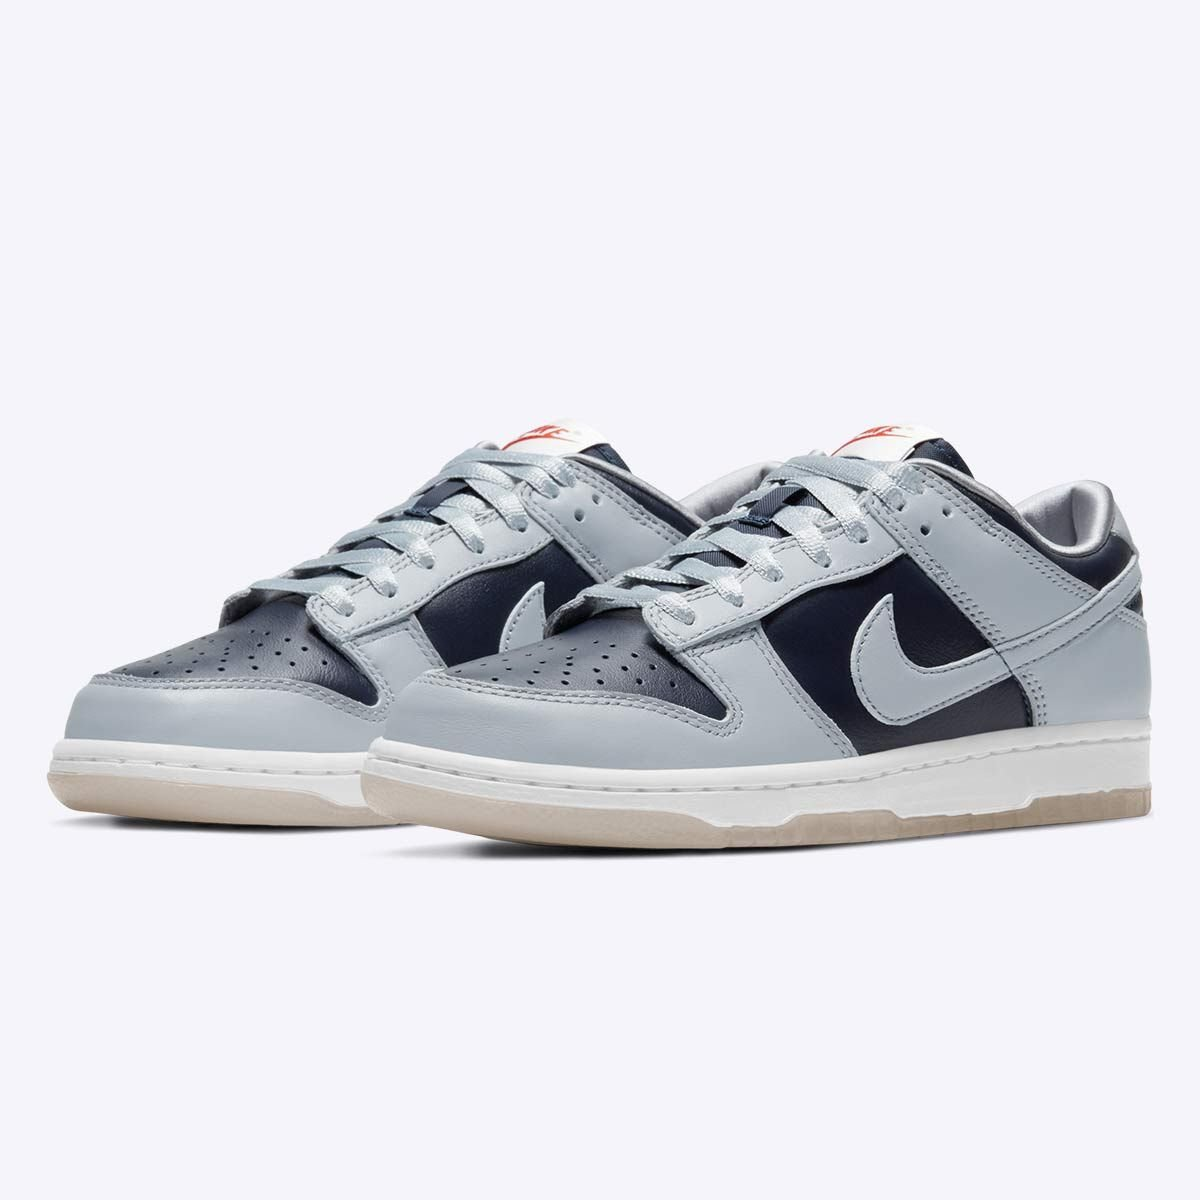 Wellgosh online raffle live for the Women's Nike Dunk Low